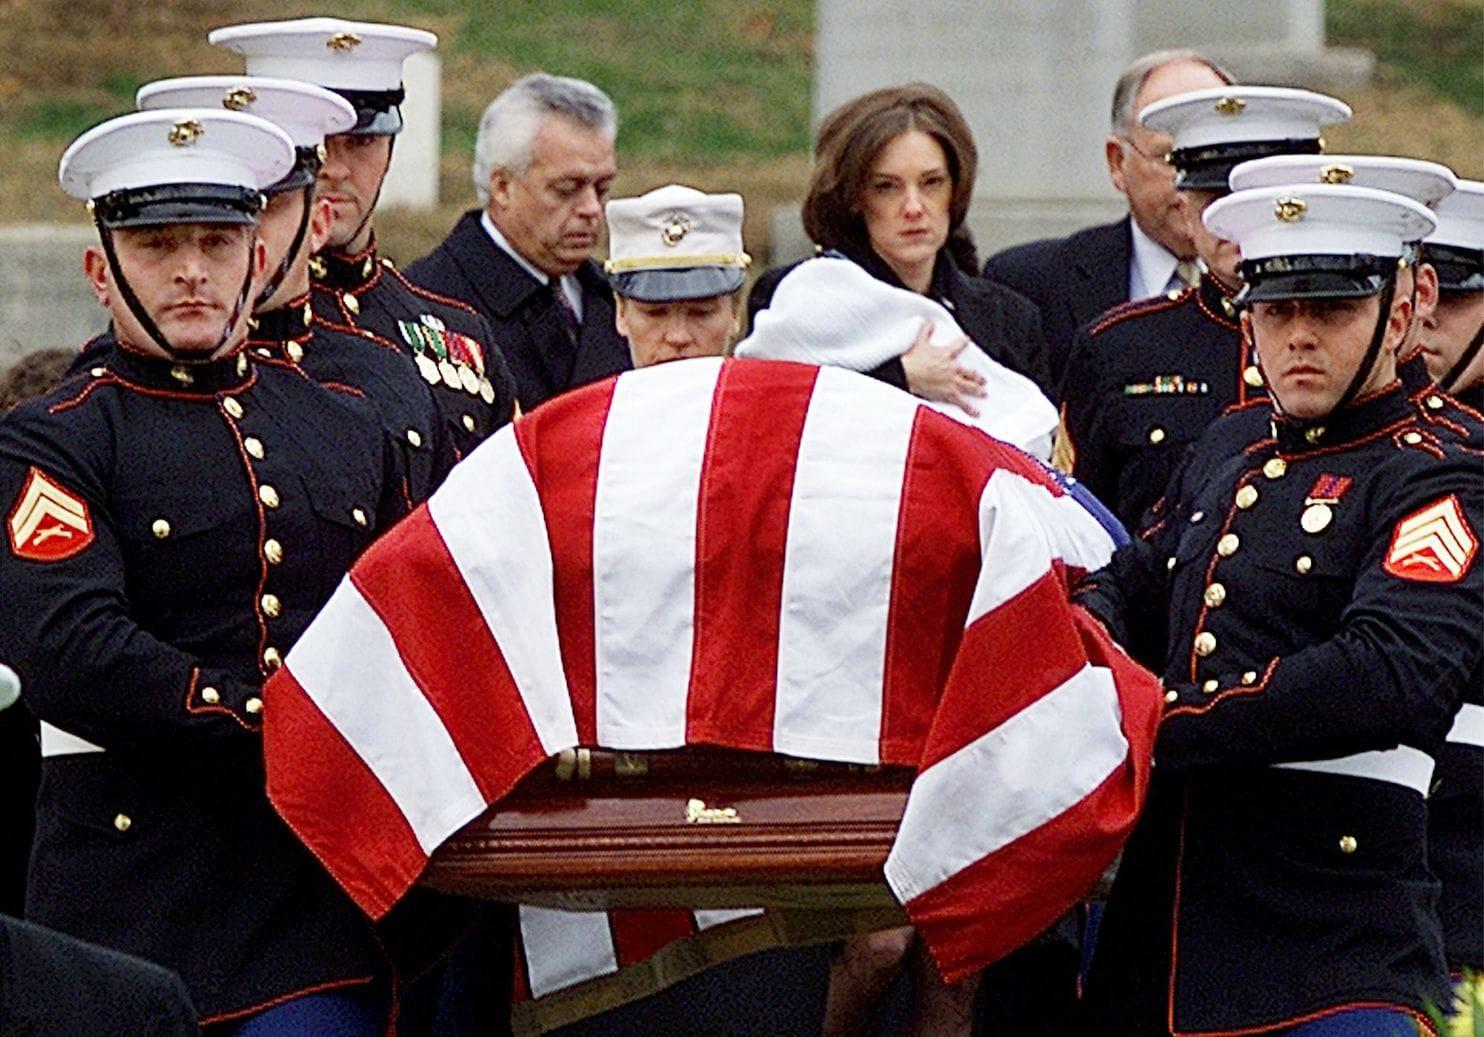 """Shannon Spann holds 6-month-old Jake as she walks behind the casket of Johnny """"Mike"""" Spann at Arlington National Cemetery on Dec. 10, 2001."""